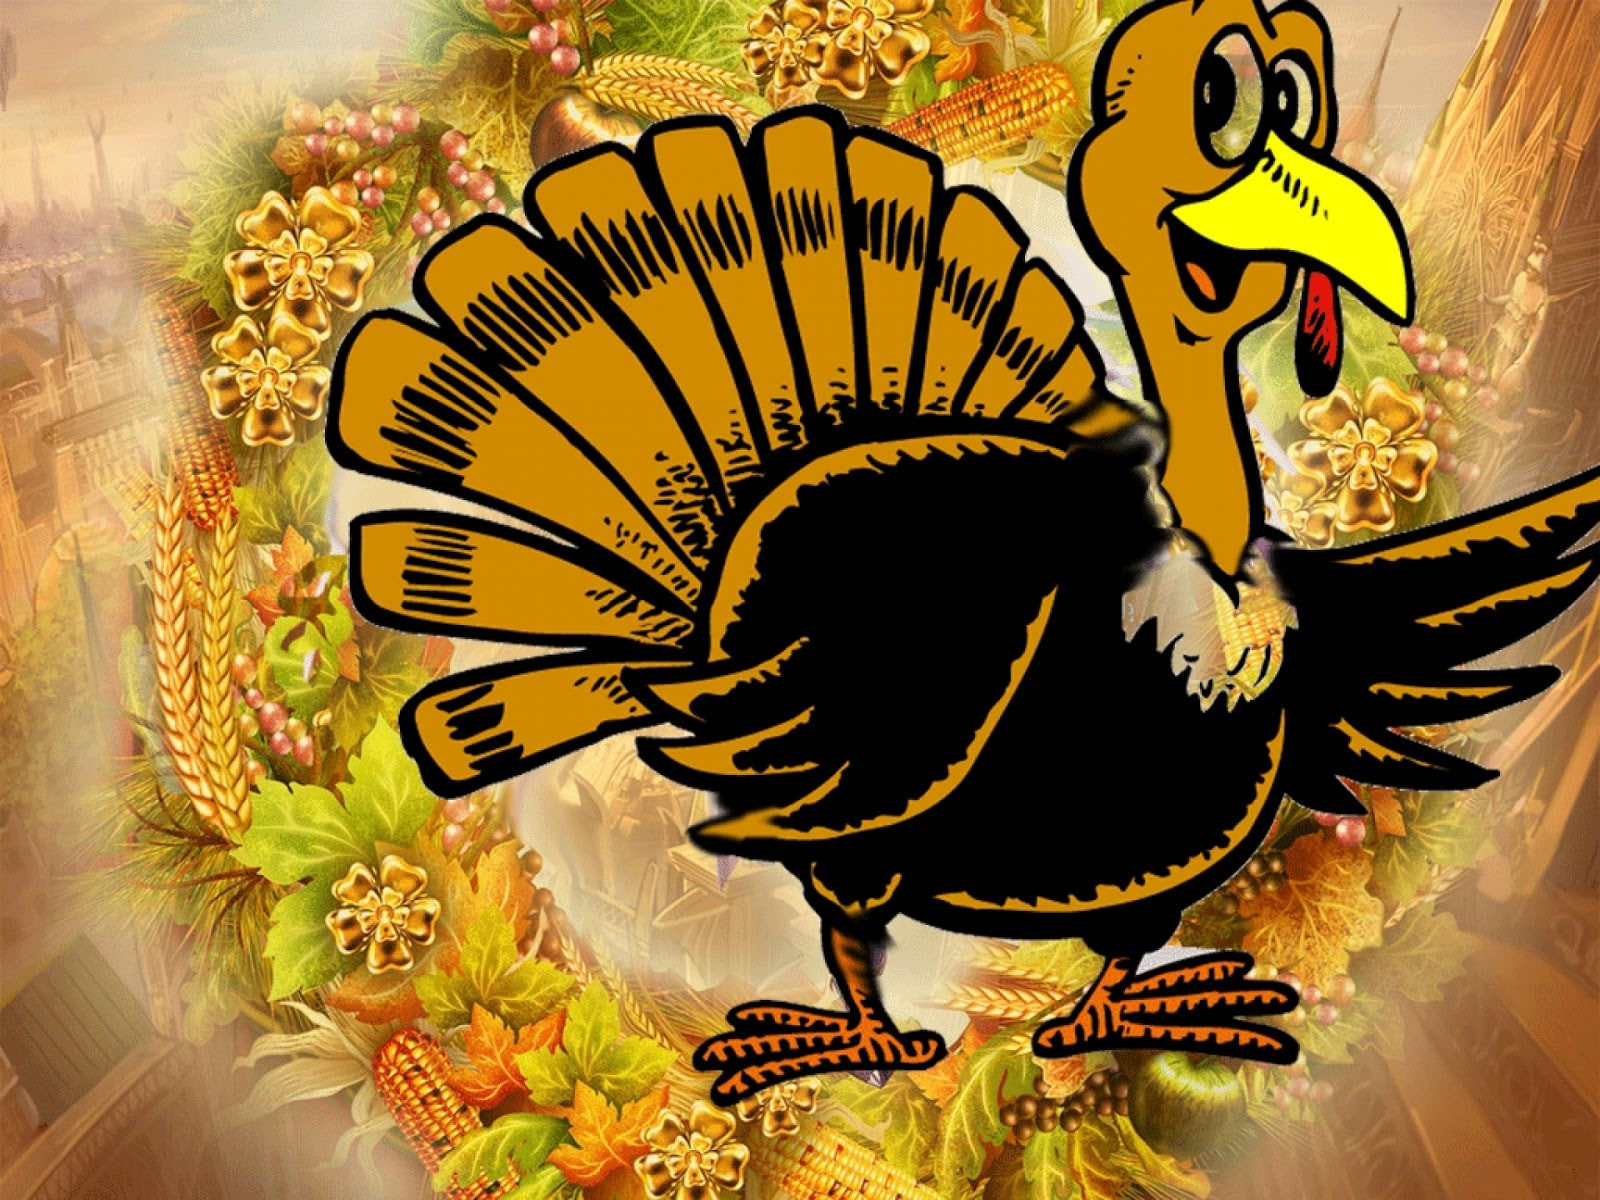 Download The Best Thanksgiving Wallpapers 2015 For Android IPhone Mac And PC